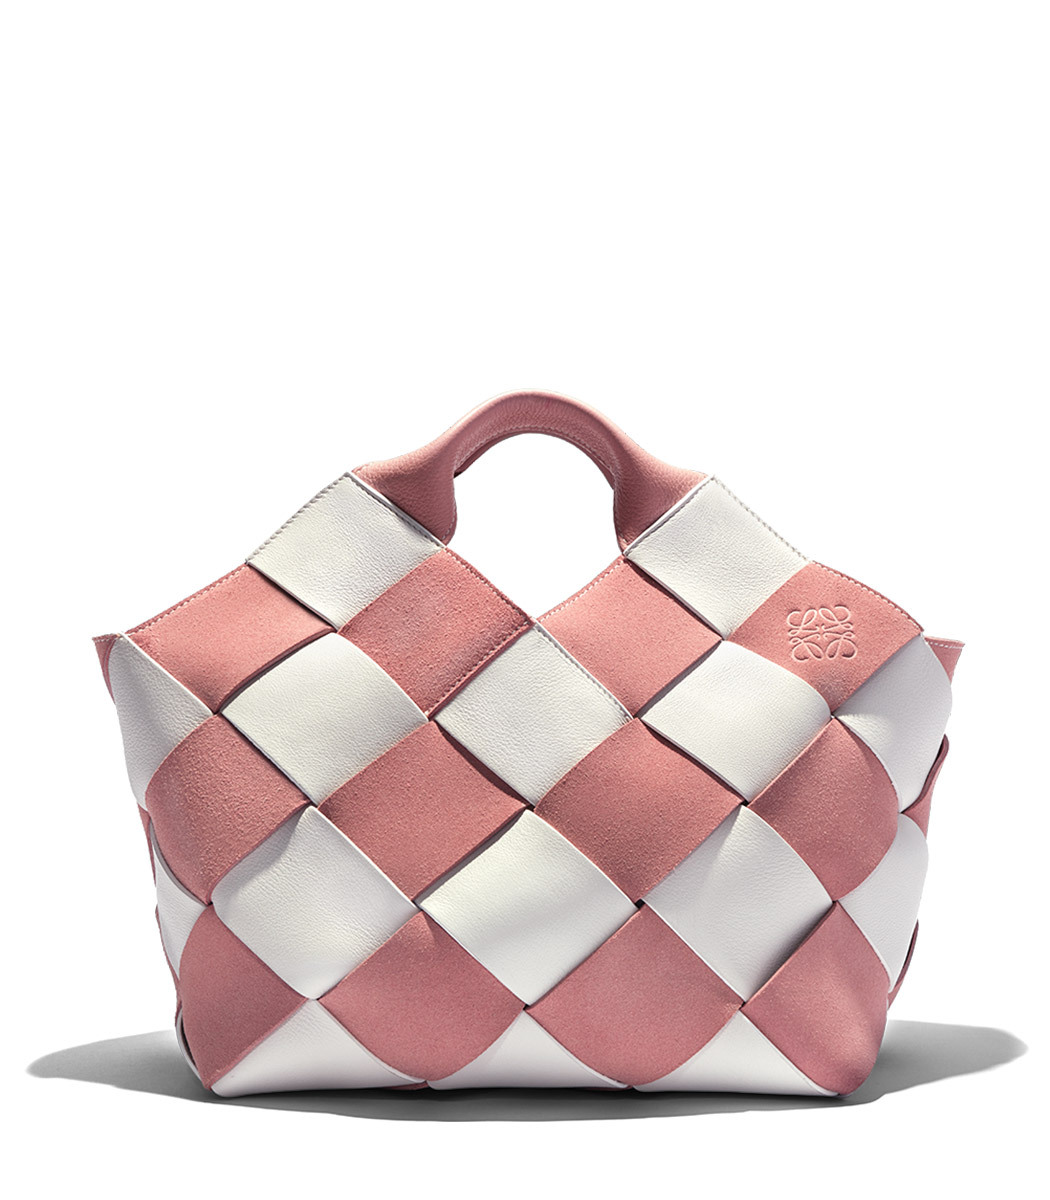 White and Pink Woven Gingham Mini Basket Bag